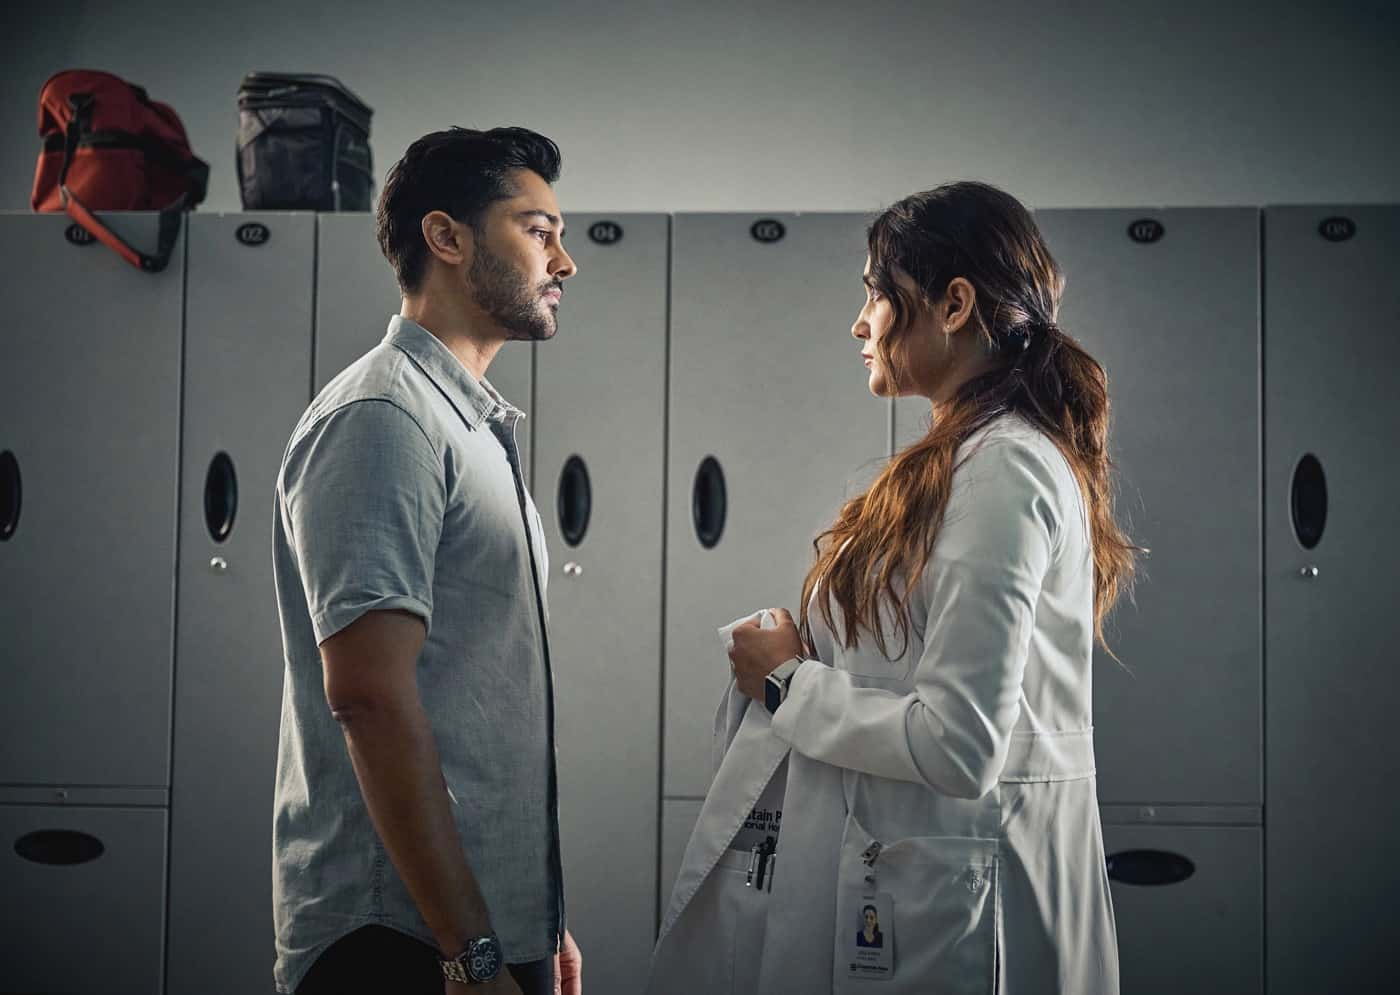 """THE RESIDENT Season 5 Episode 3: L-R:  Manish Dayal and guest star Anuja Joshiin the """"Long & Winding Road"""" episode of THE RESIDENT airing Tuesday, Oct. 5 (8:00-9:00 PM ET/PT) on FOX. ©2021 Fox Media LLC Cr: Tom Griscom/FOX"""